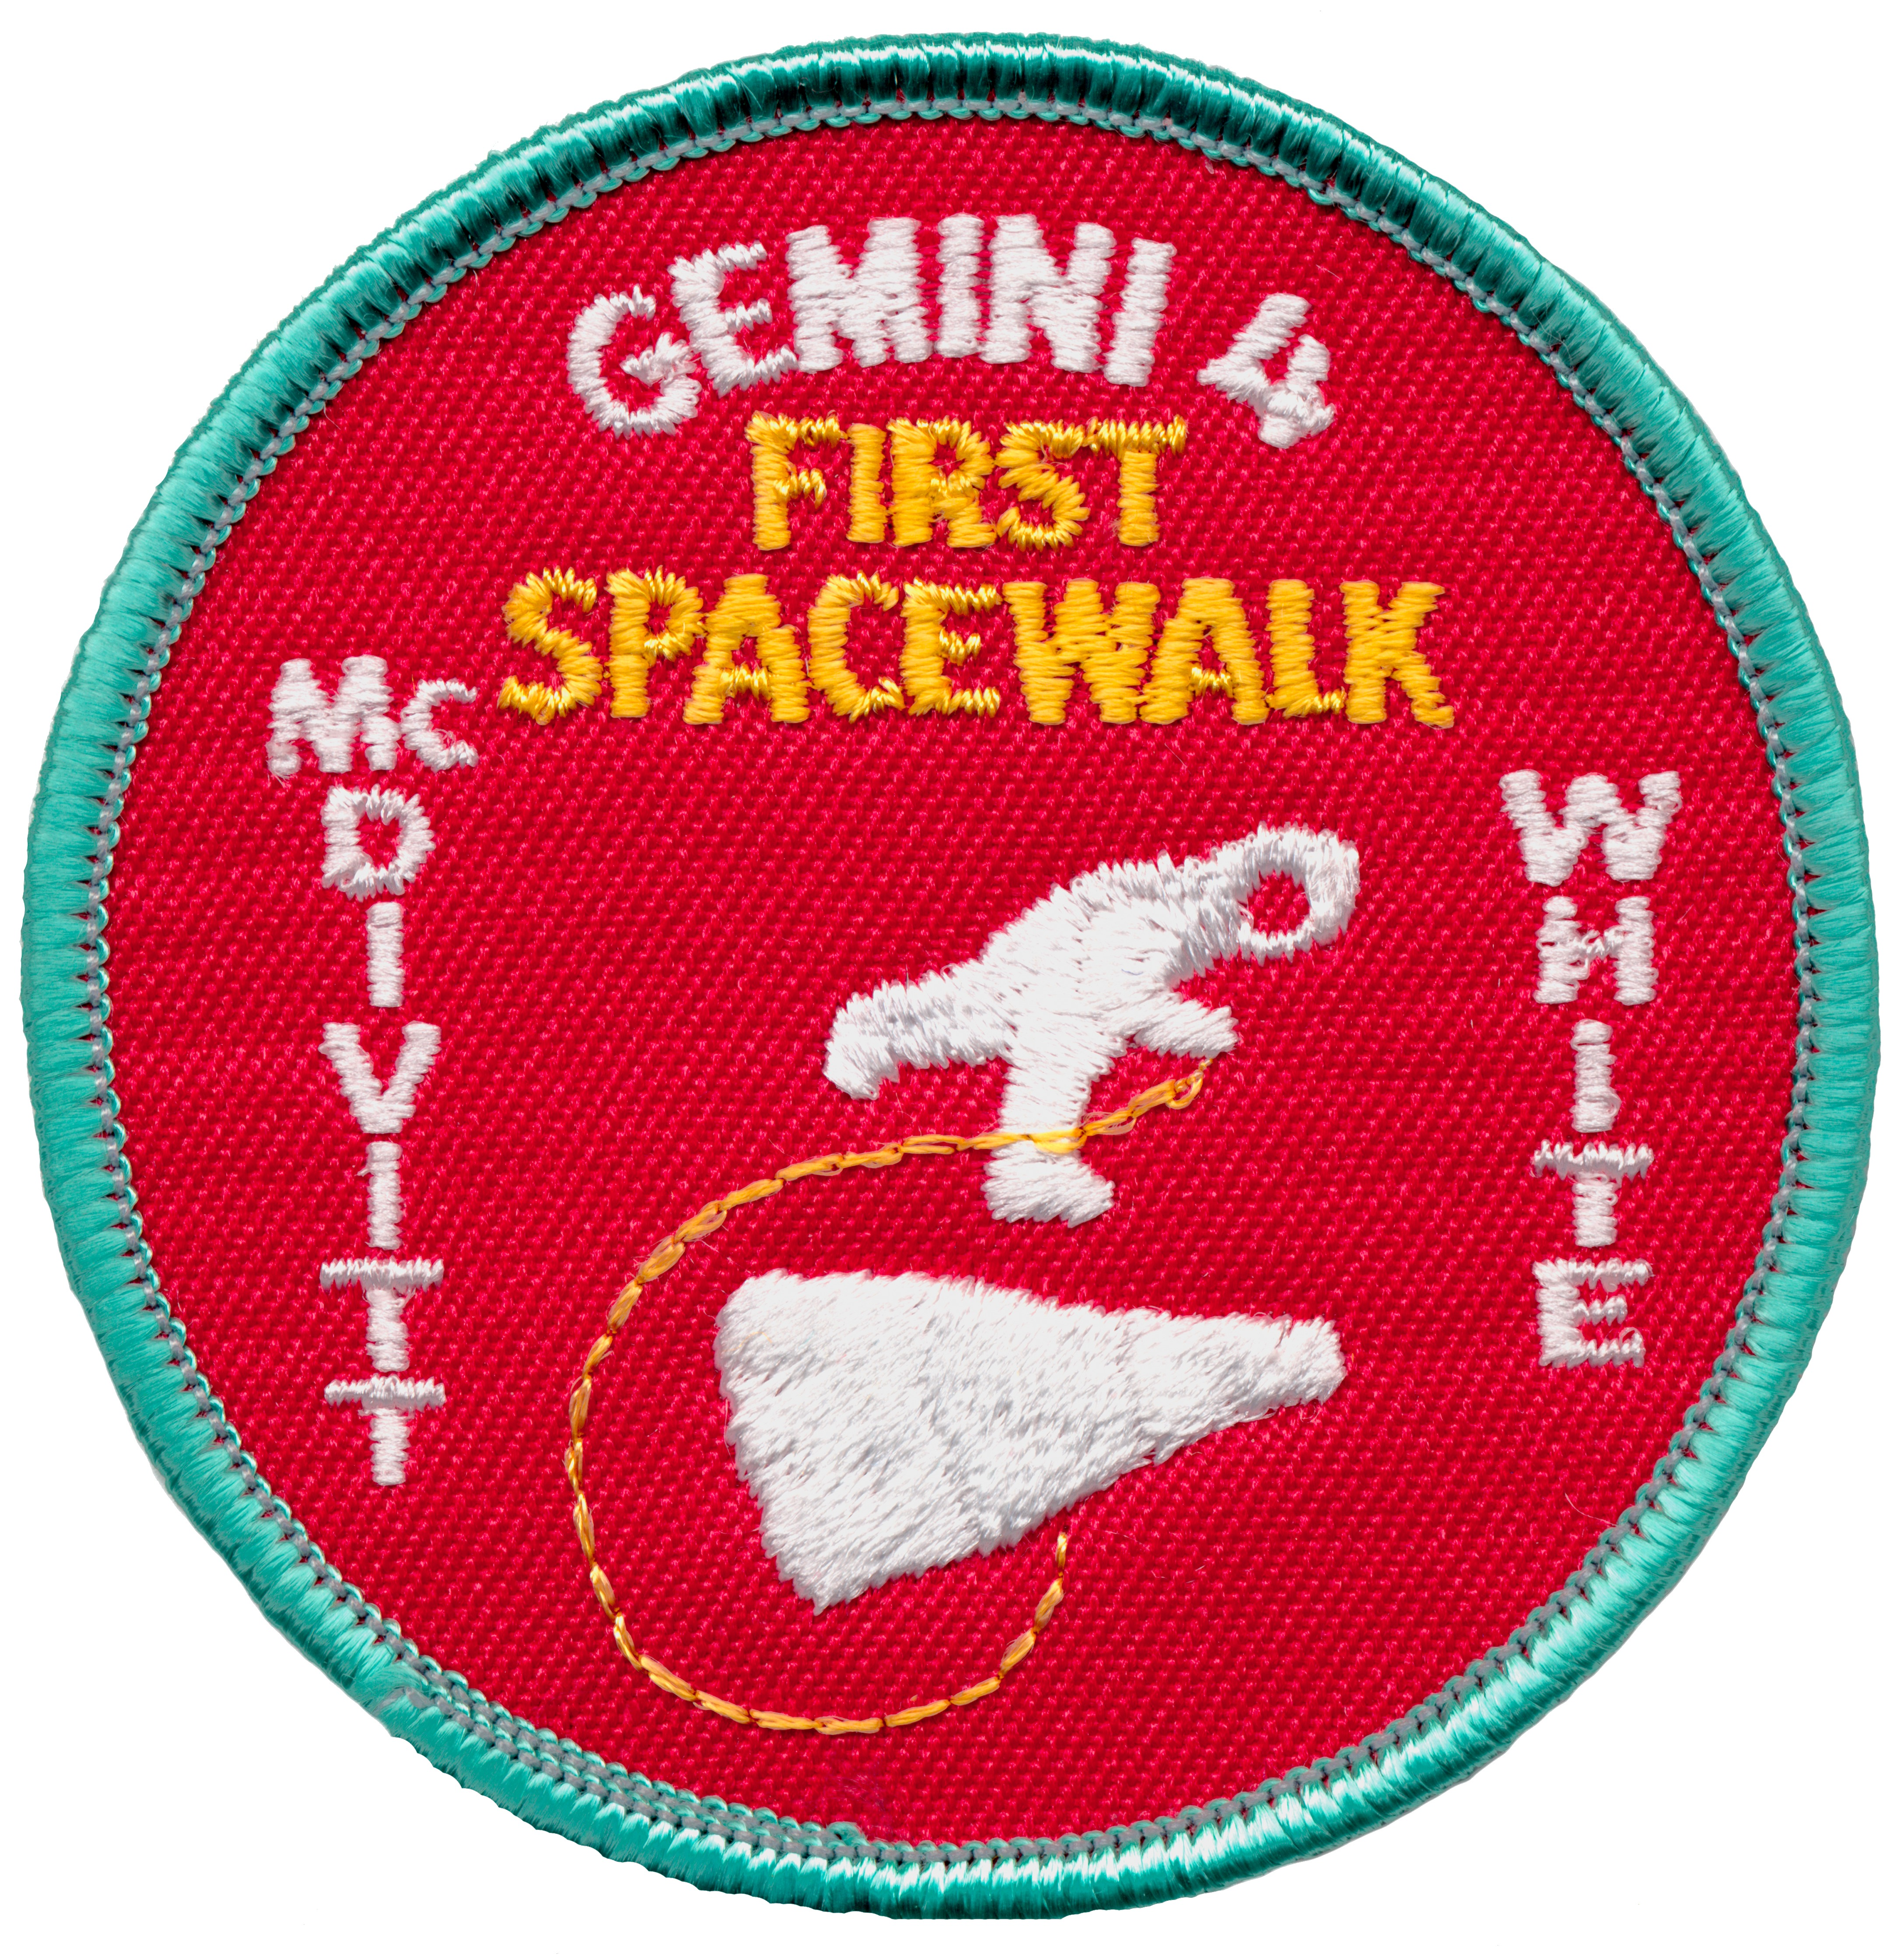 gemini space mission badges - photo #4